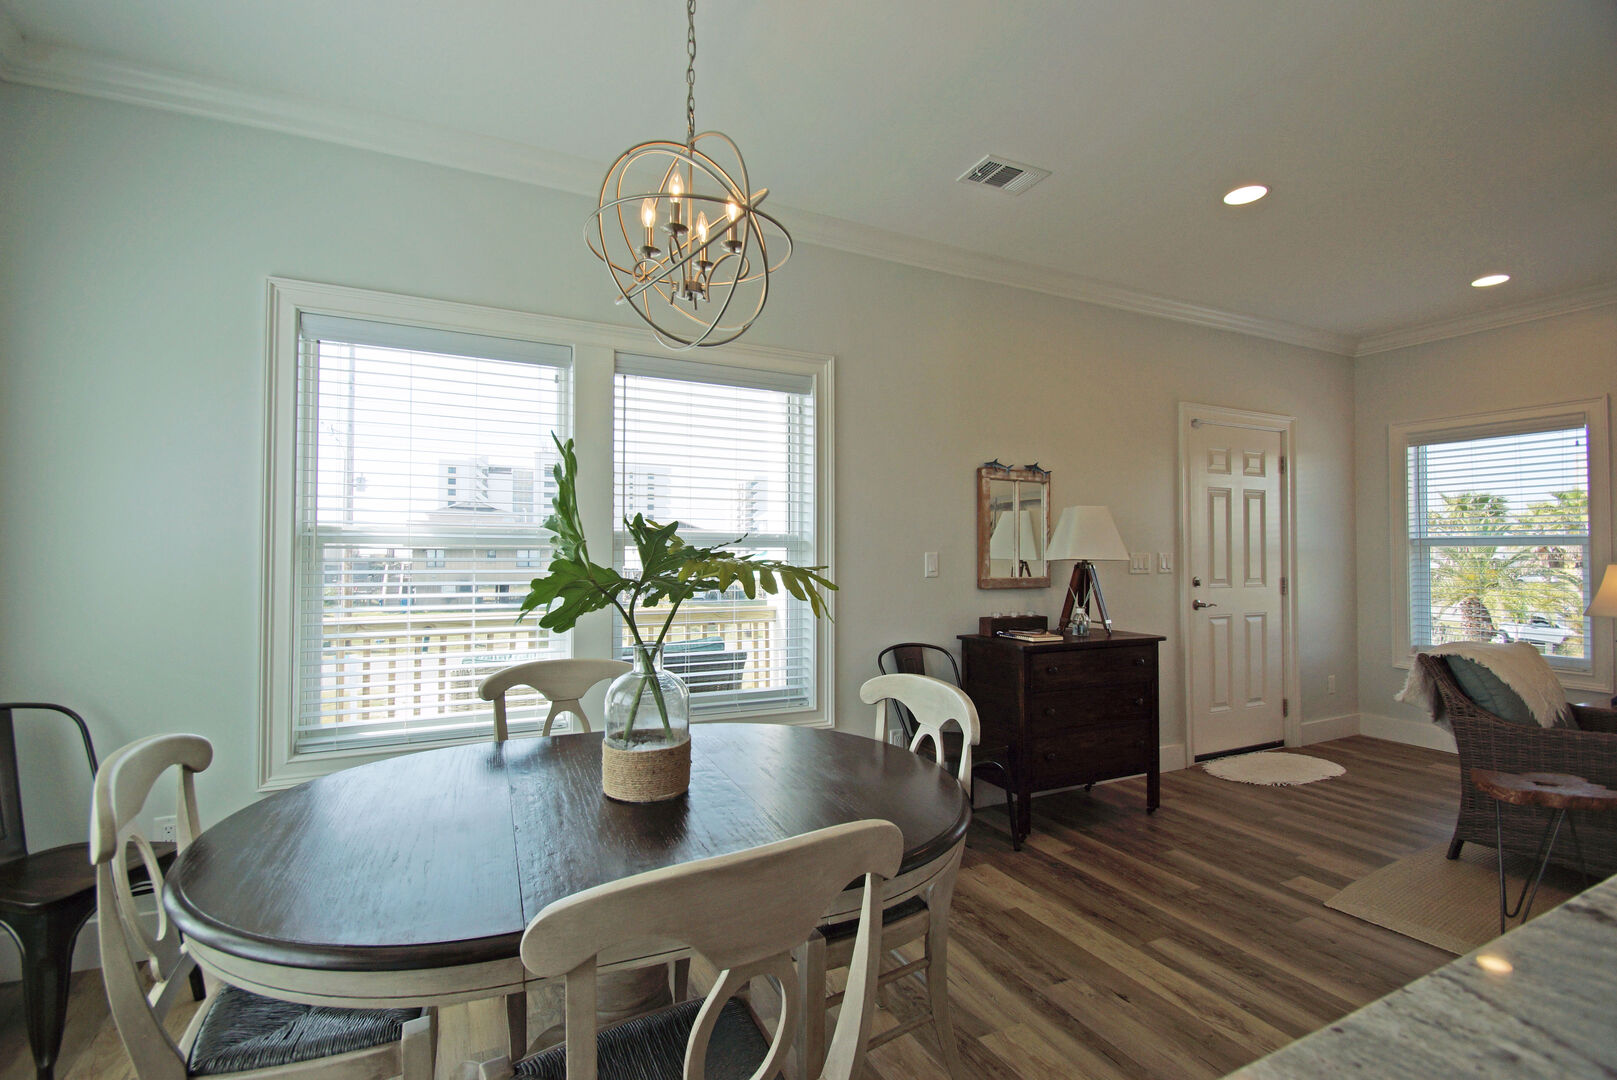 Dining Area with Dining Table seating for four